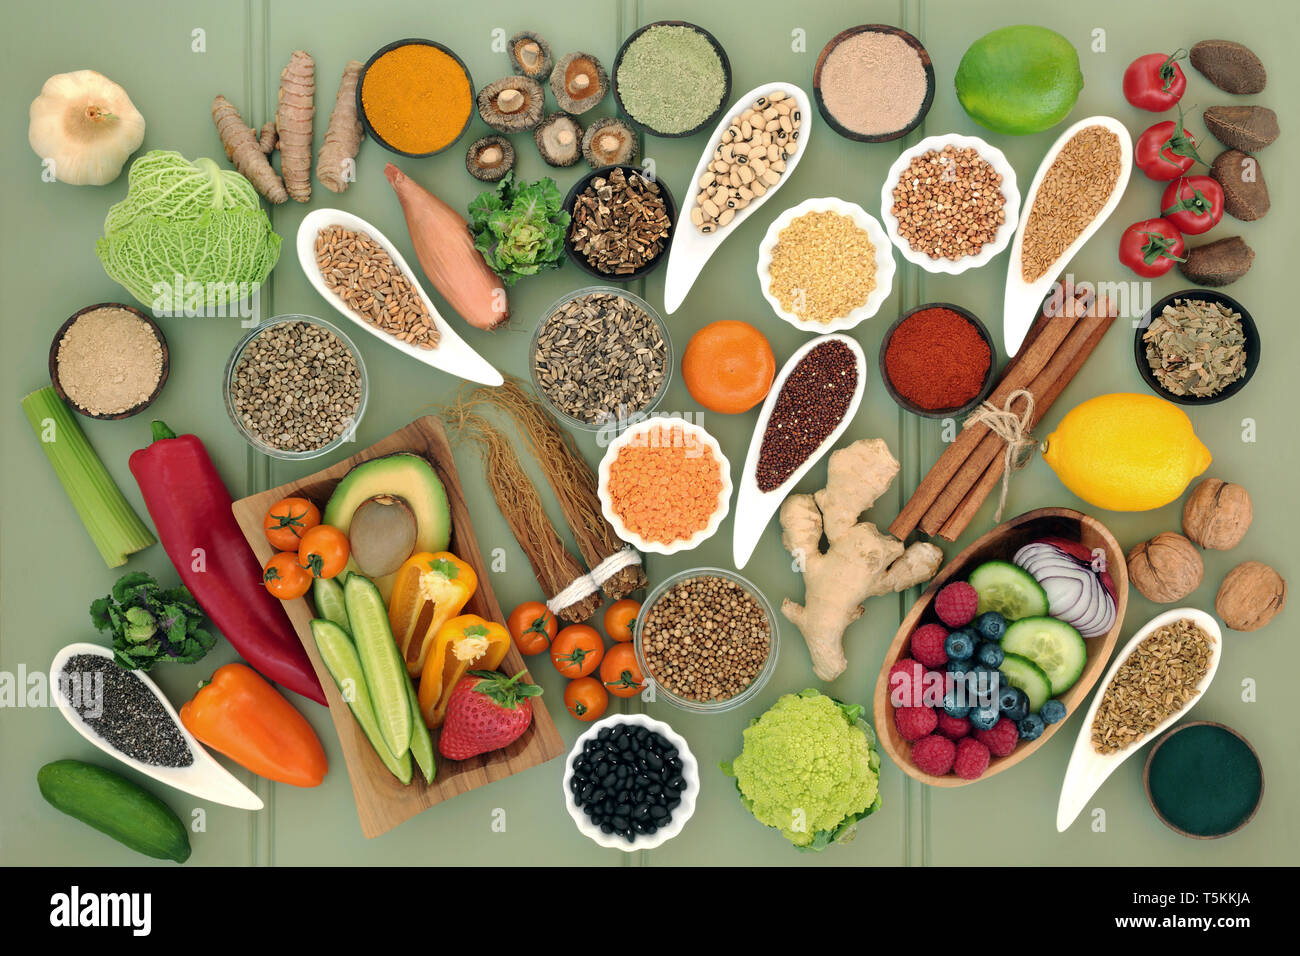 Healthy food for liver detox concept with fruit, vegetables, legumes, grains, seeds, herbs & spices used in herbal medicine & supplement powders. - Stock Image